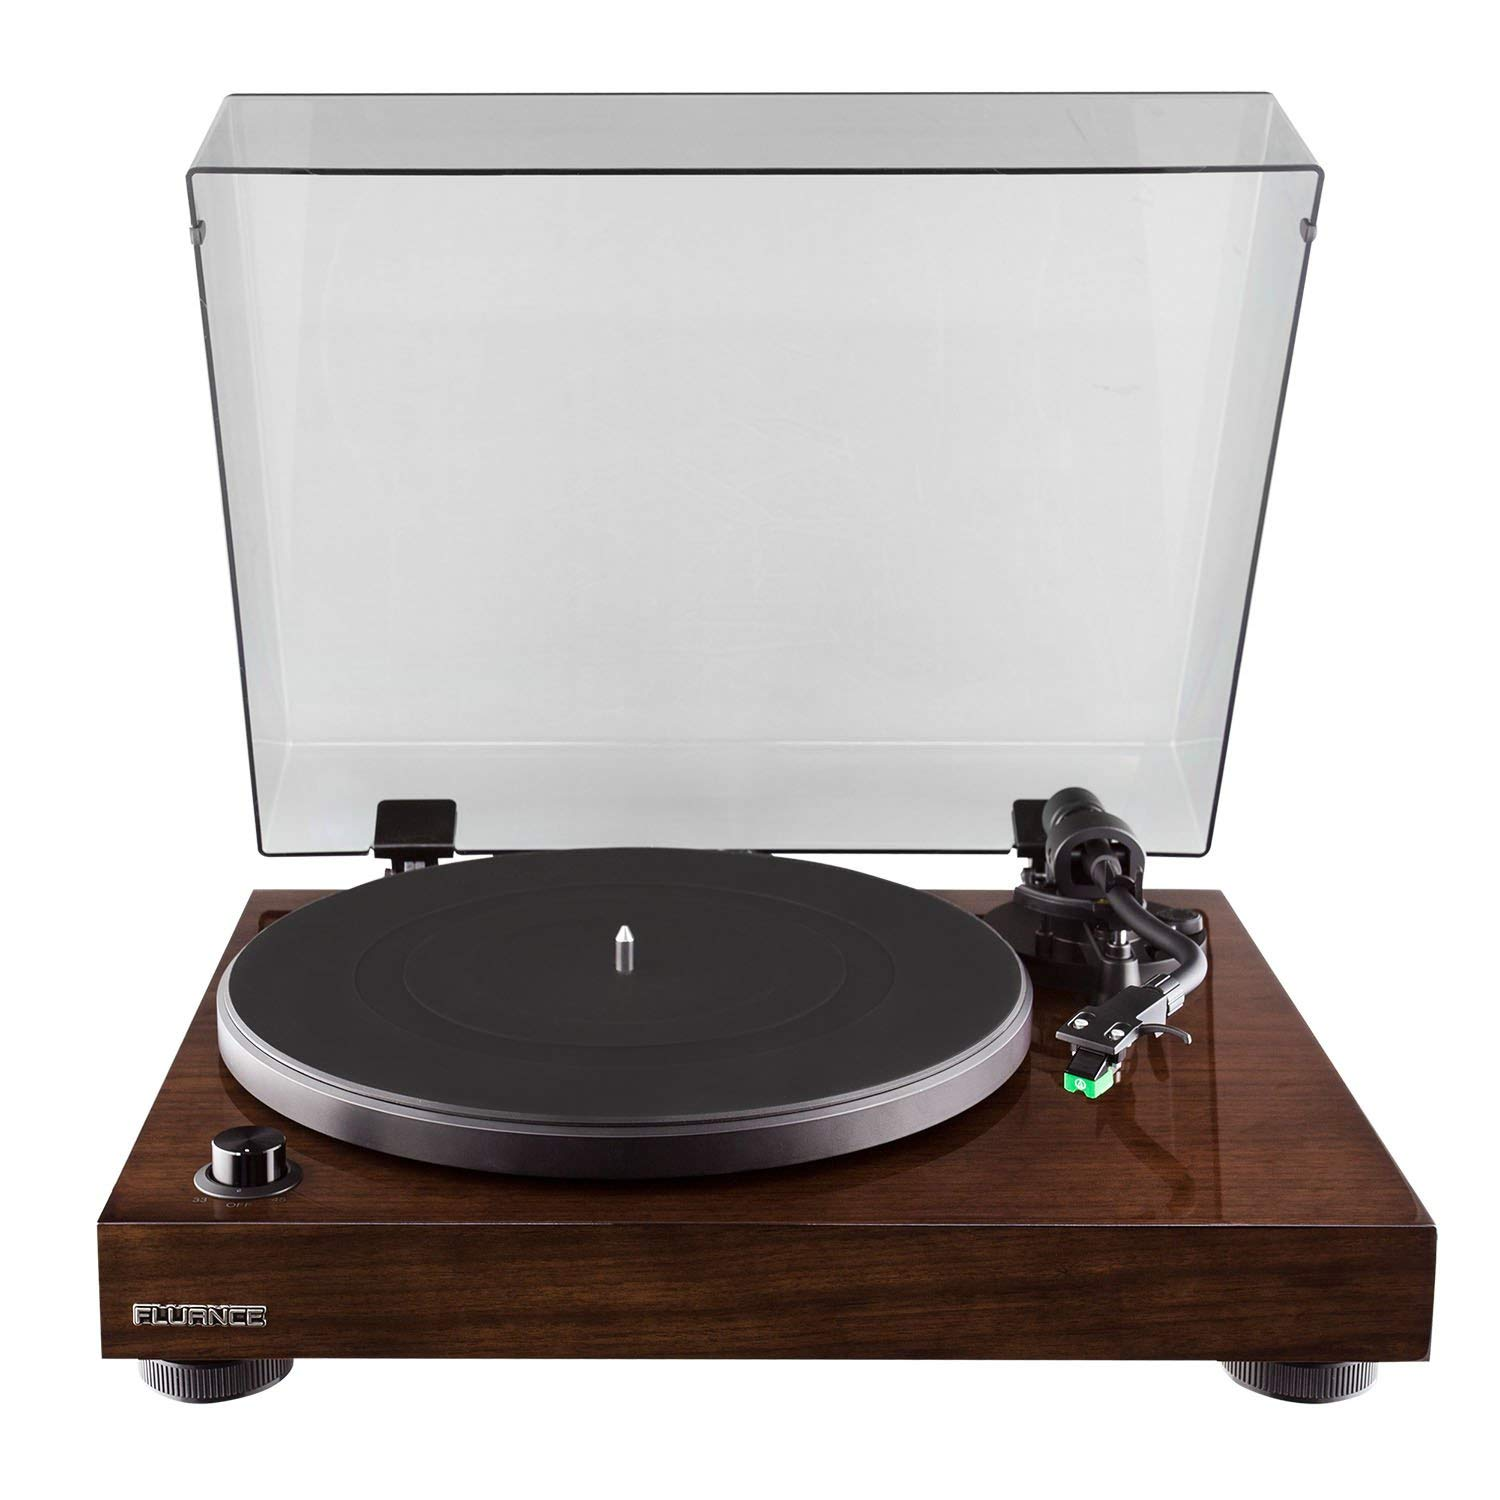 [Fluance][Fluance RT81 High Fidelity Vinyl Turntable Record Player with Dual Magnet Cartridge, Elliptical Diamond Stylus, Belt Drive, Built-in Preamp, Adjustable Counterweight & Anti-Skating, Solid Wood Cabinet](Parallel Imported Goods)   B07R448SK9